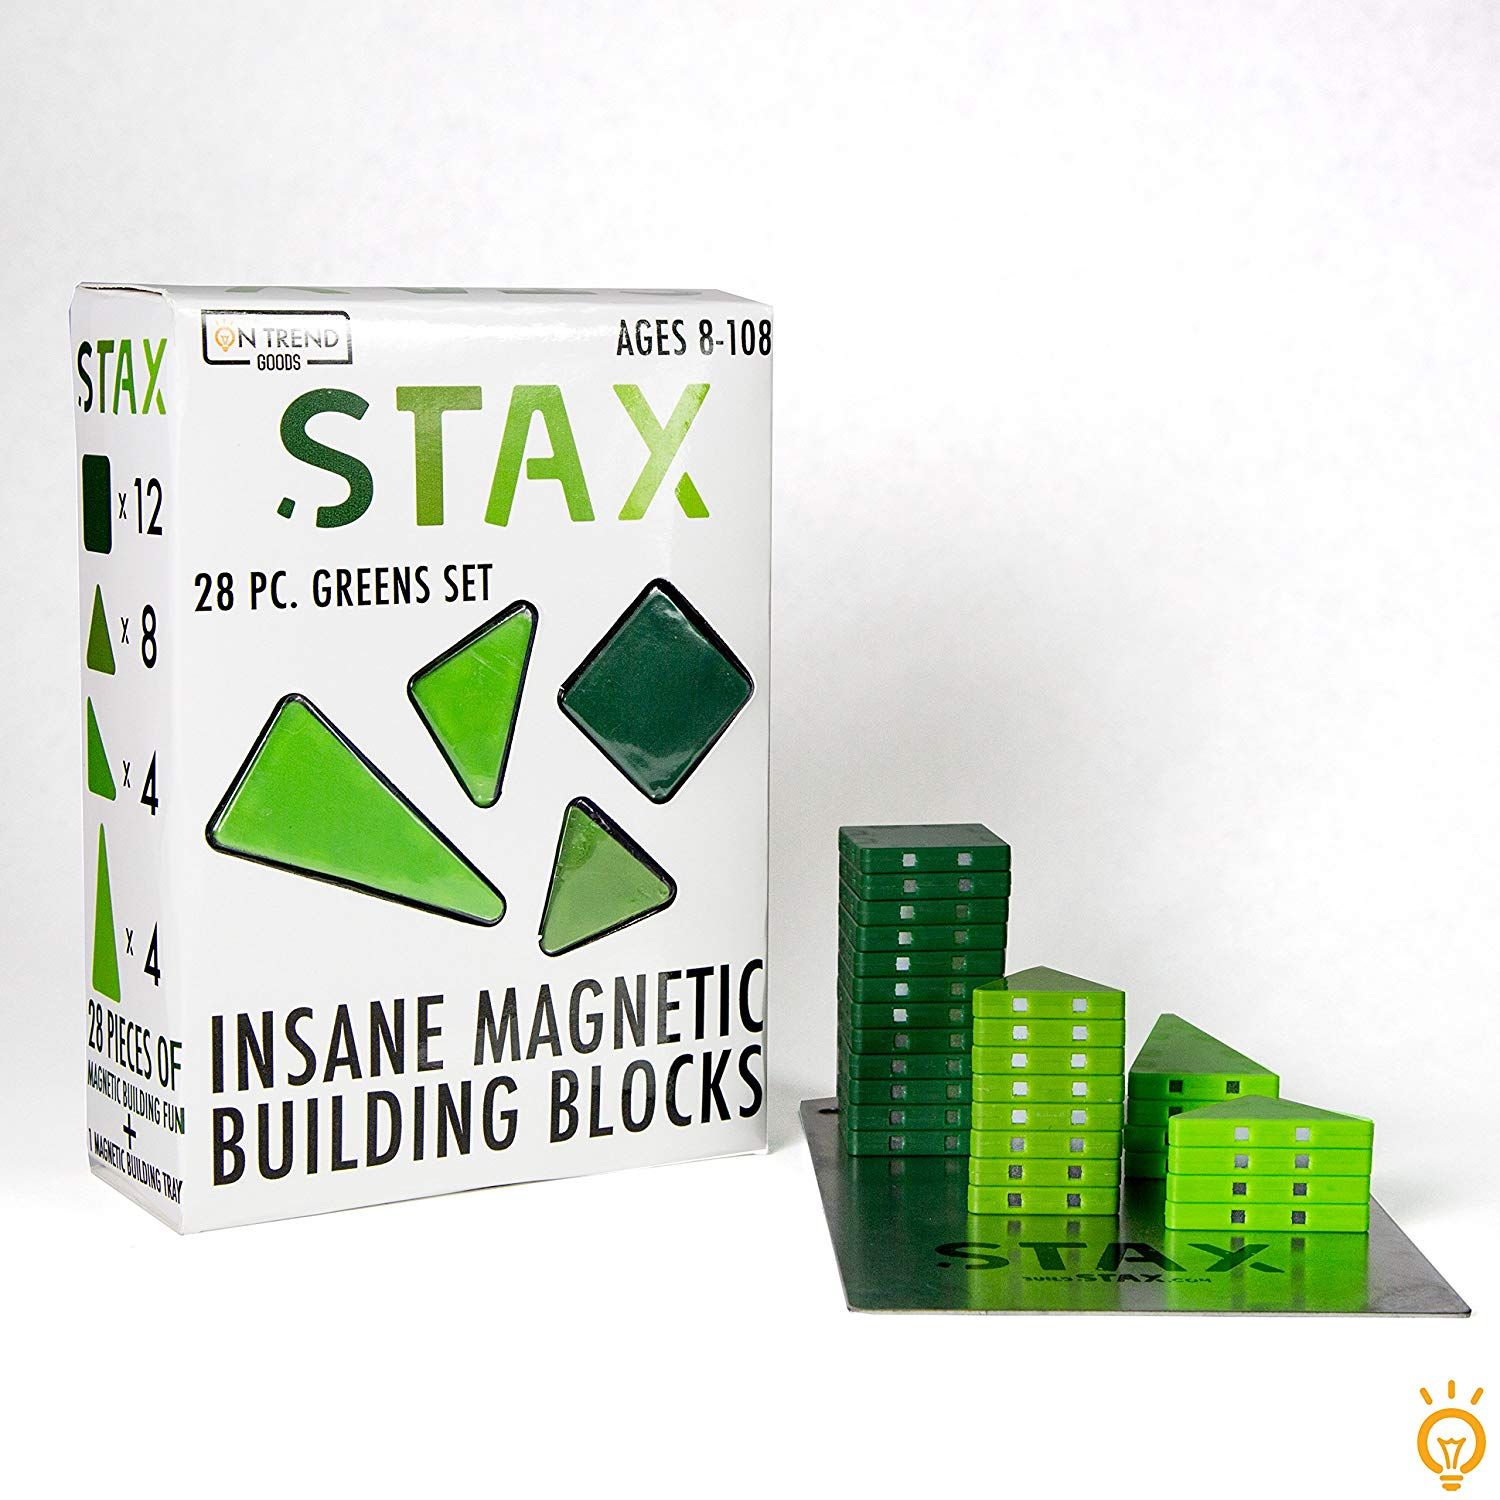 STAX 28pc Insane Magnetic Building Block Set (Greens) by On Trend Goods